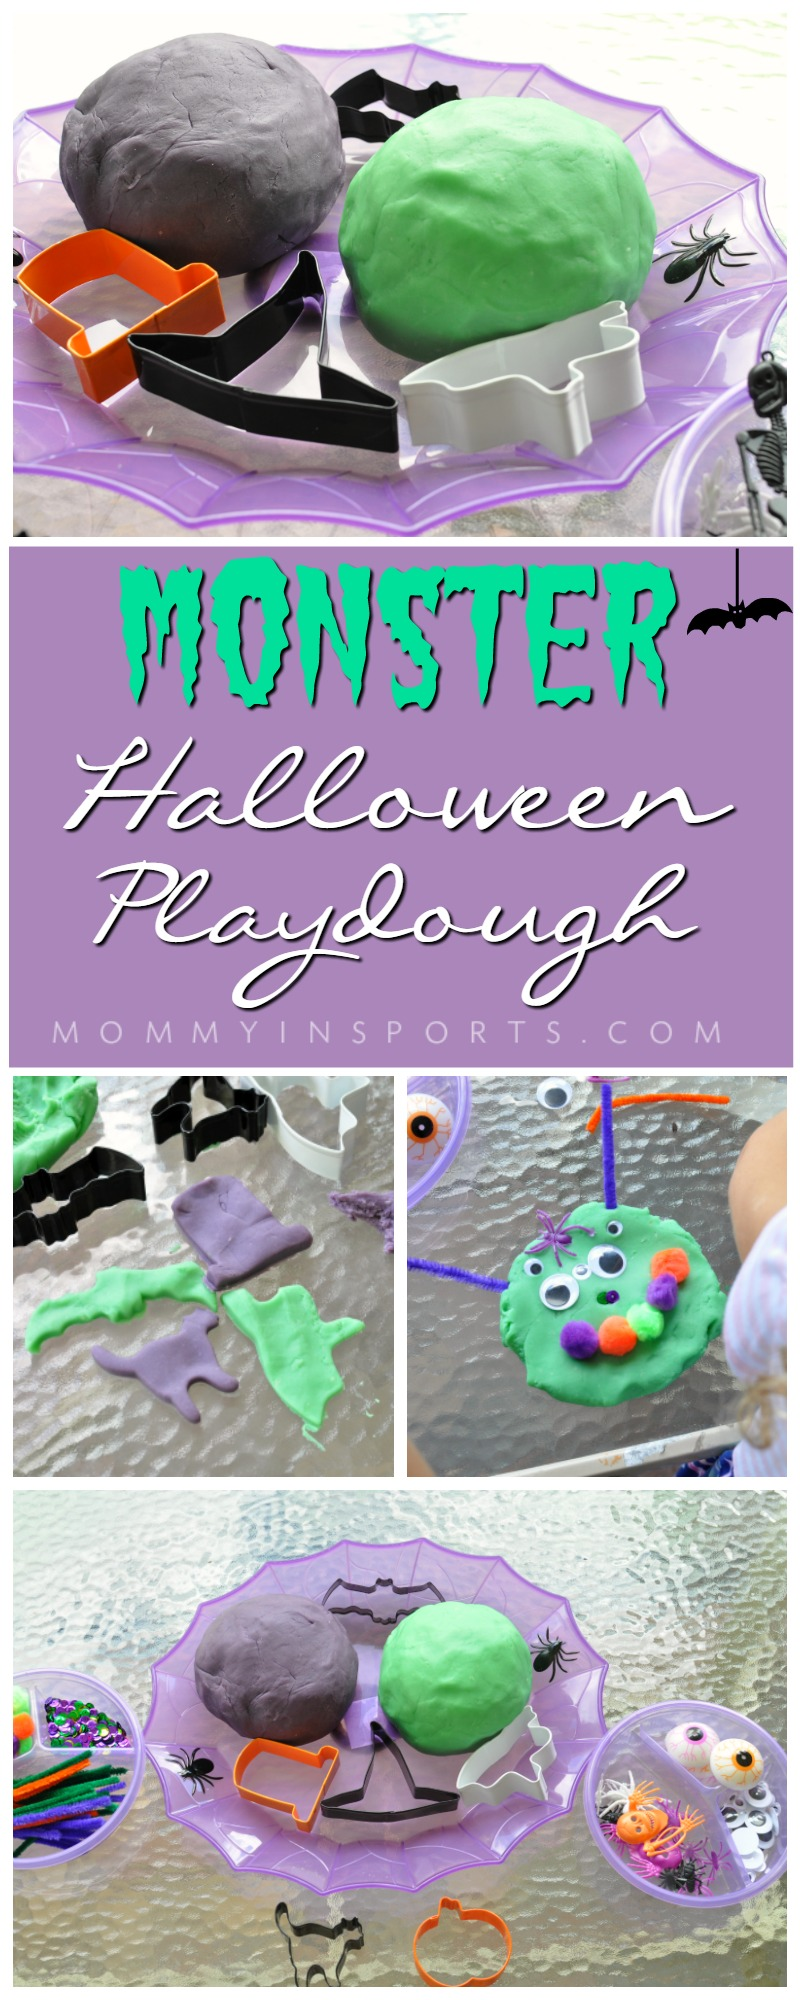 It's that time of your for spooky ghosts and goblins! Make this Monster Halloween Play Dough and wow your kids with a fun and easy art project!